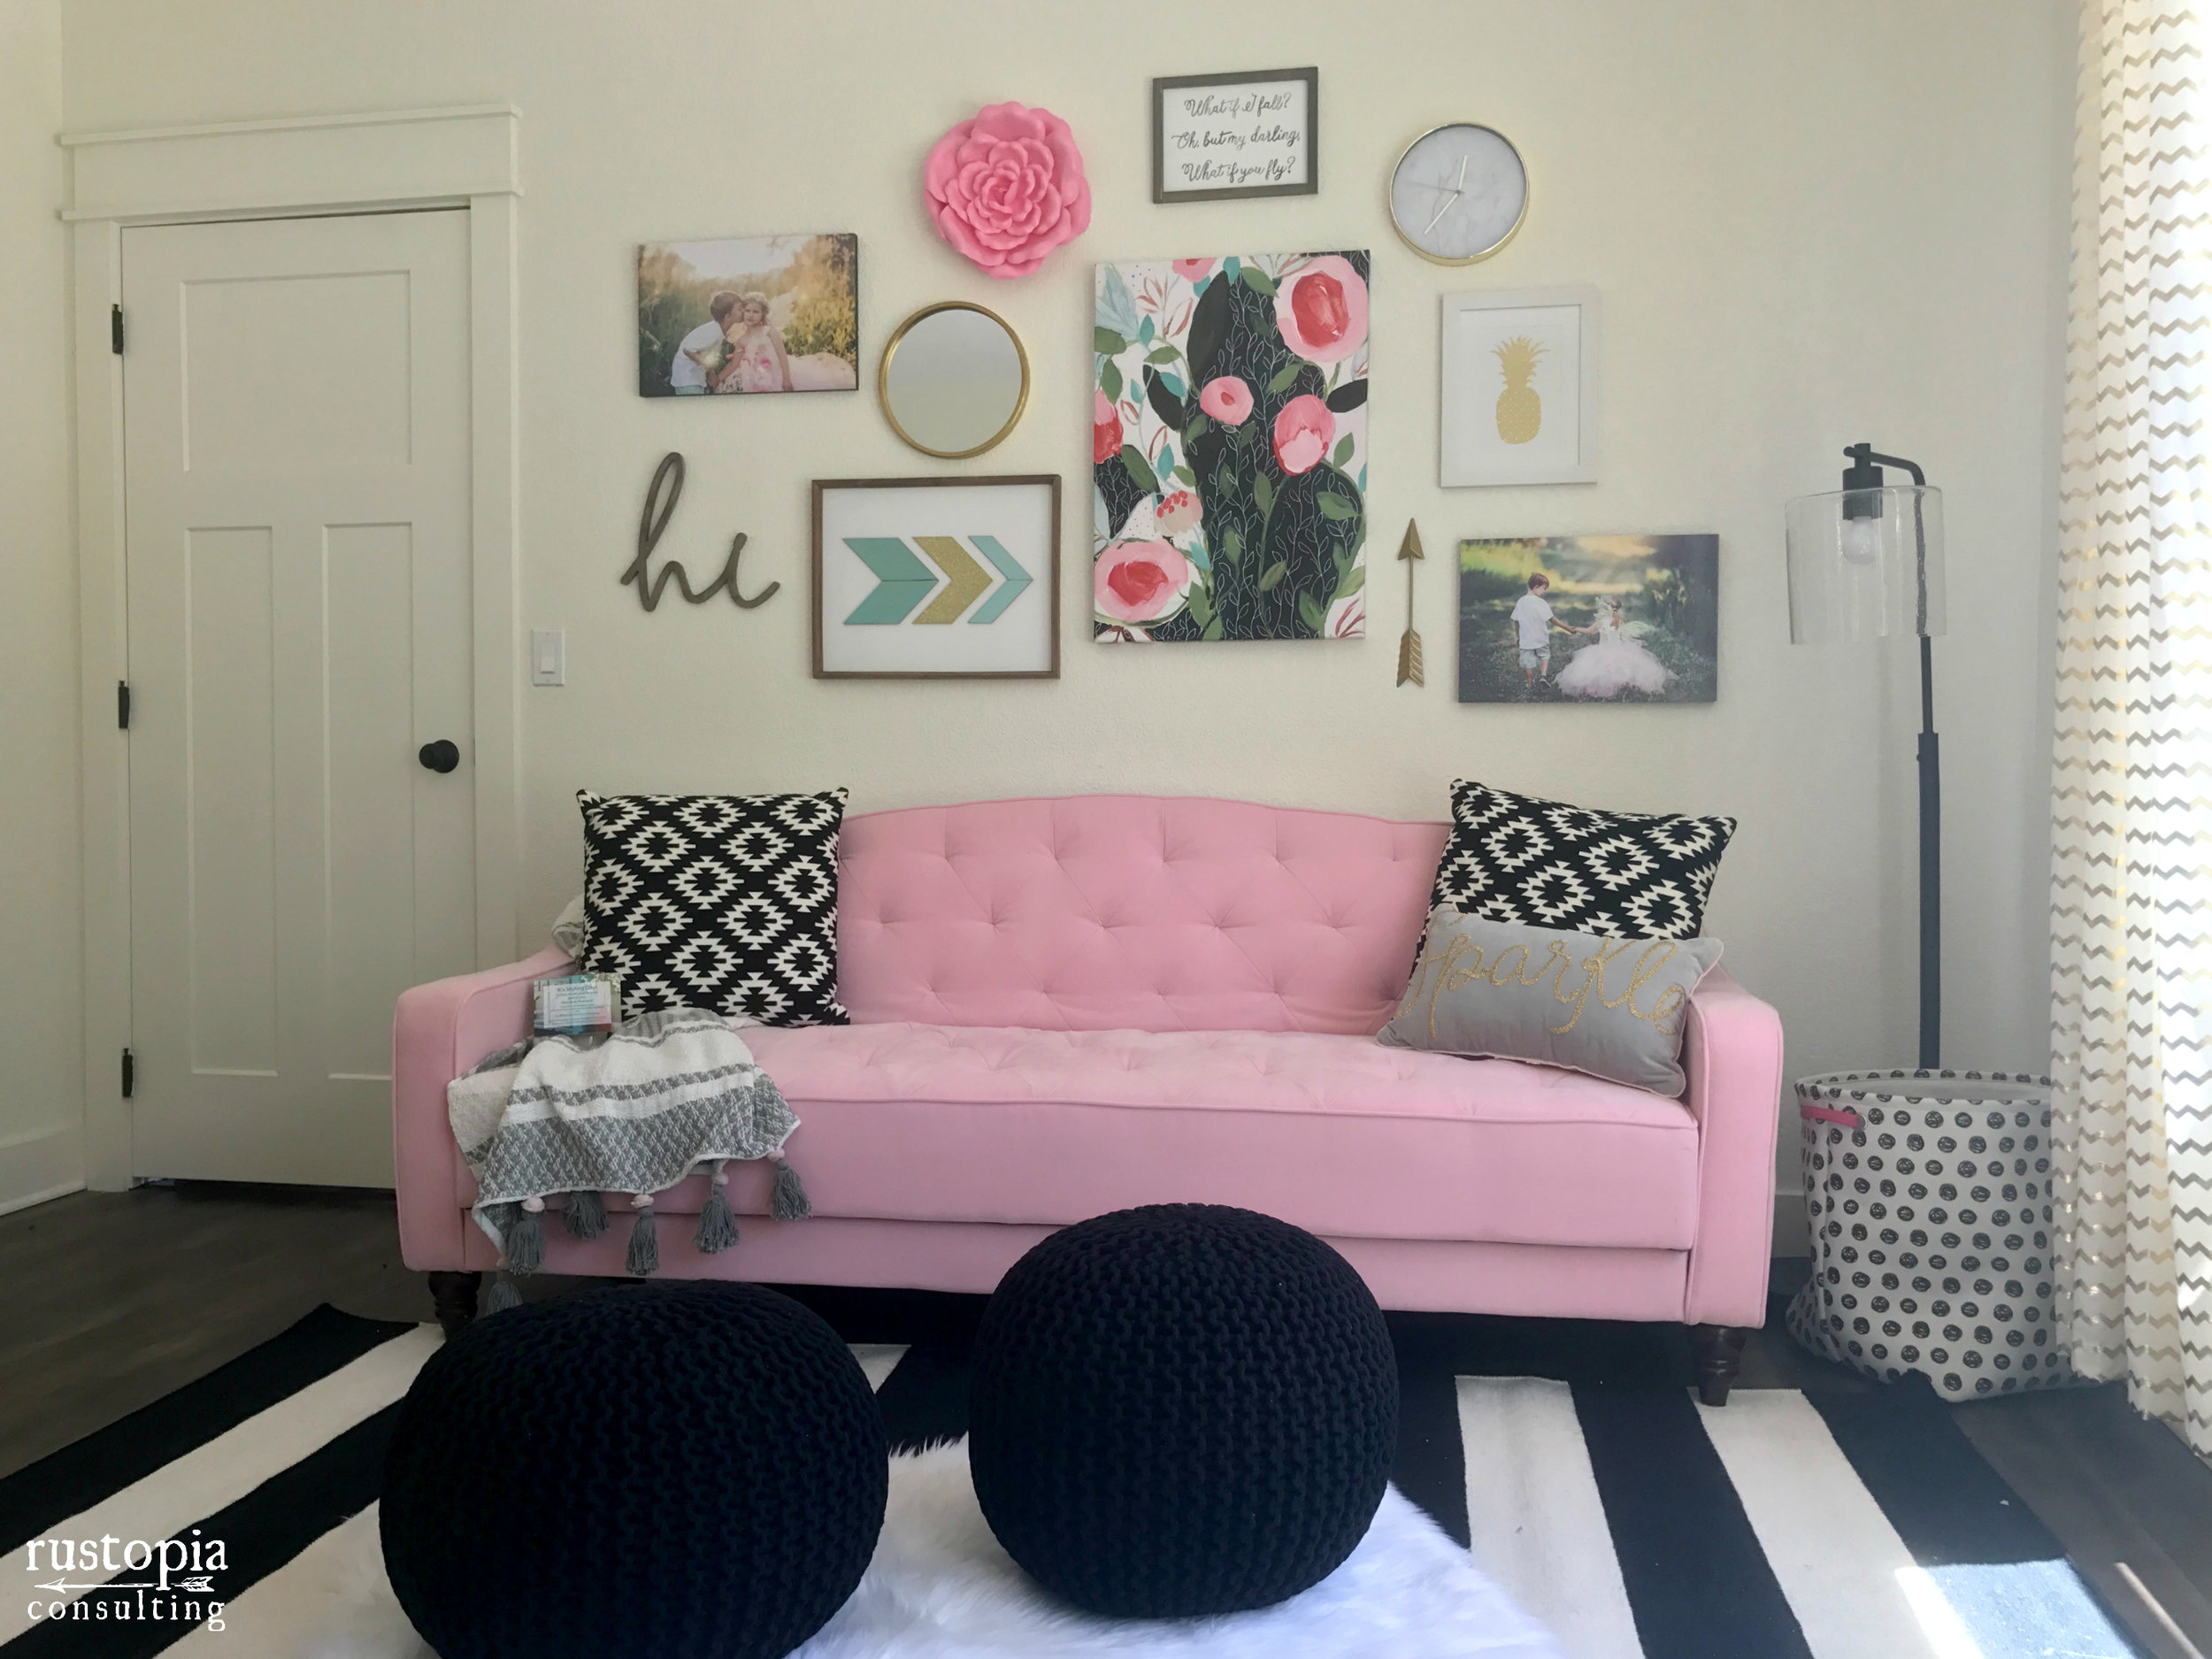 Home office gallery wall featuring pink art, and a pink couch | hprallandco.com